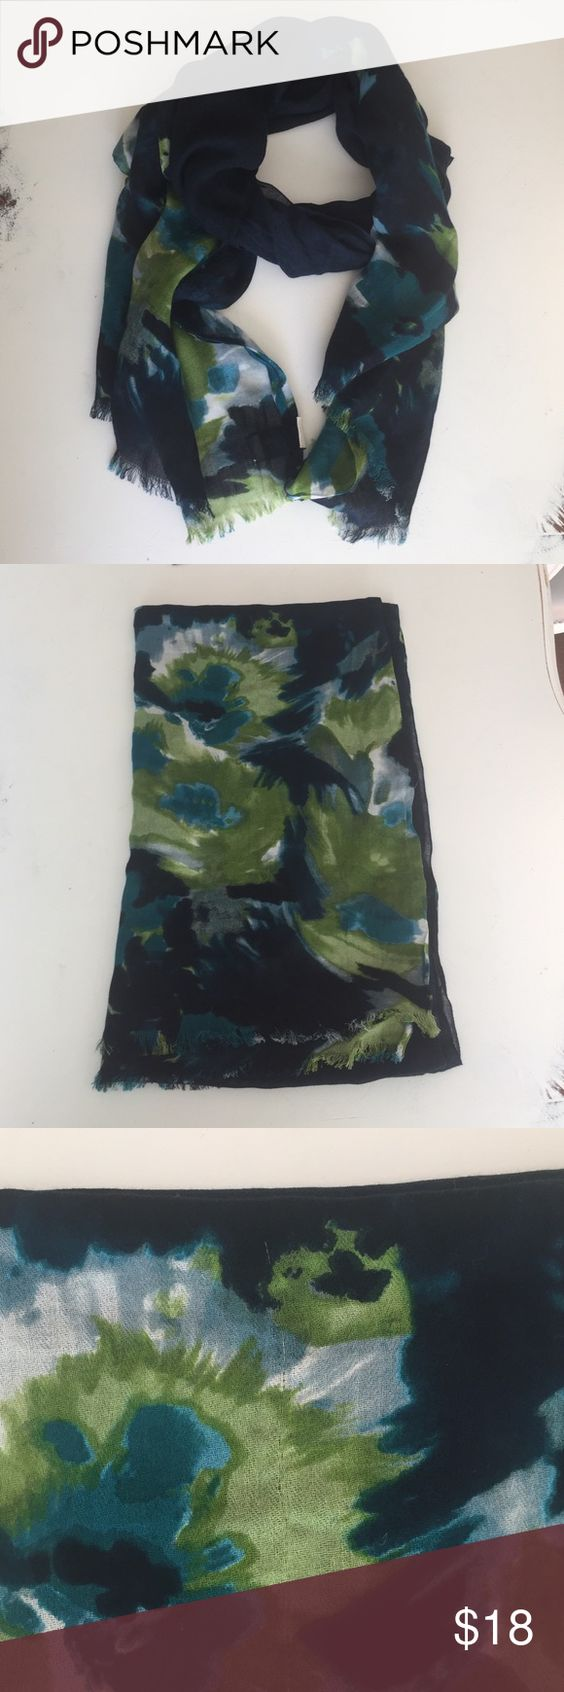 Abercrombie & Fitch floral scarf Abercrombie & Fitch navy/greens/blues floral cotton scarf, worn a few times, slight snag as pictured but not noticeable while wearing Abercrombie & Fitch Accessories Scarves & Wraps